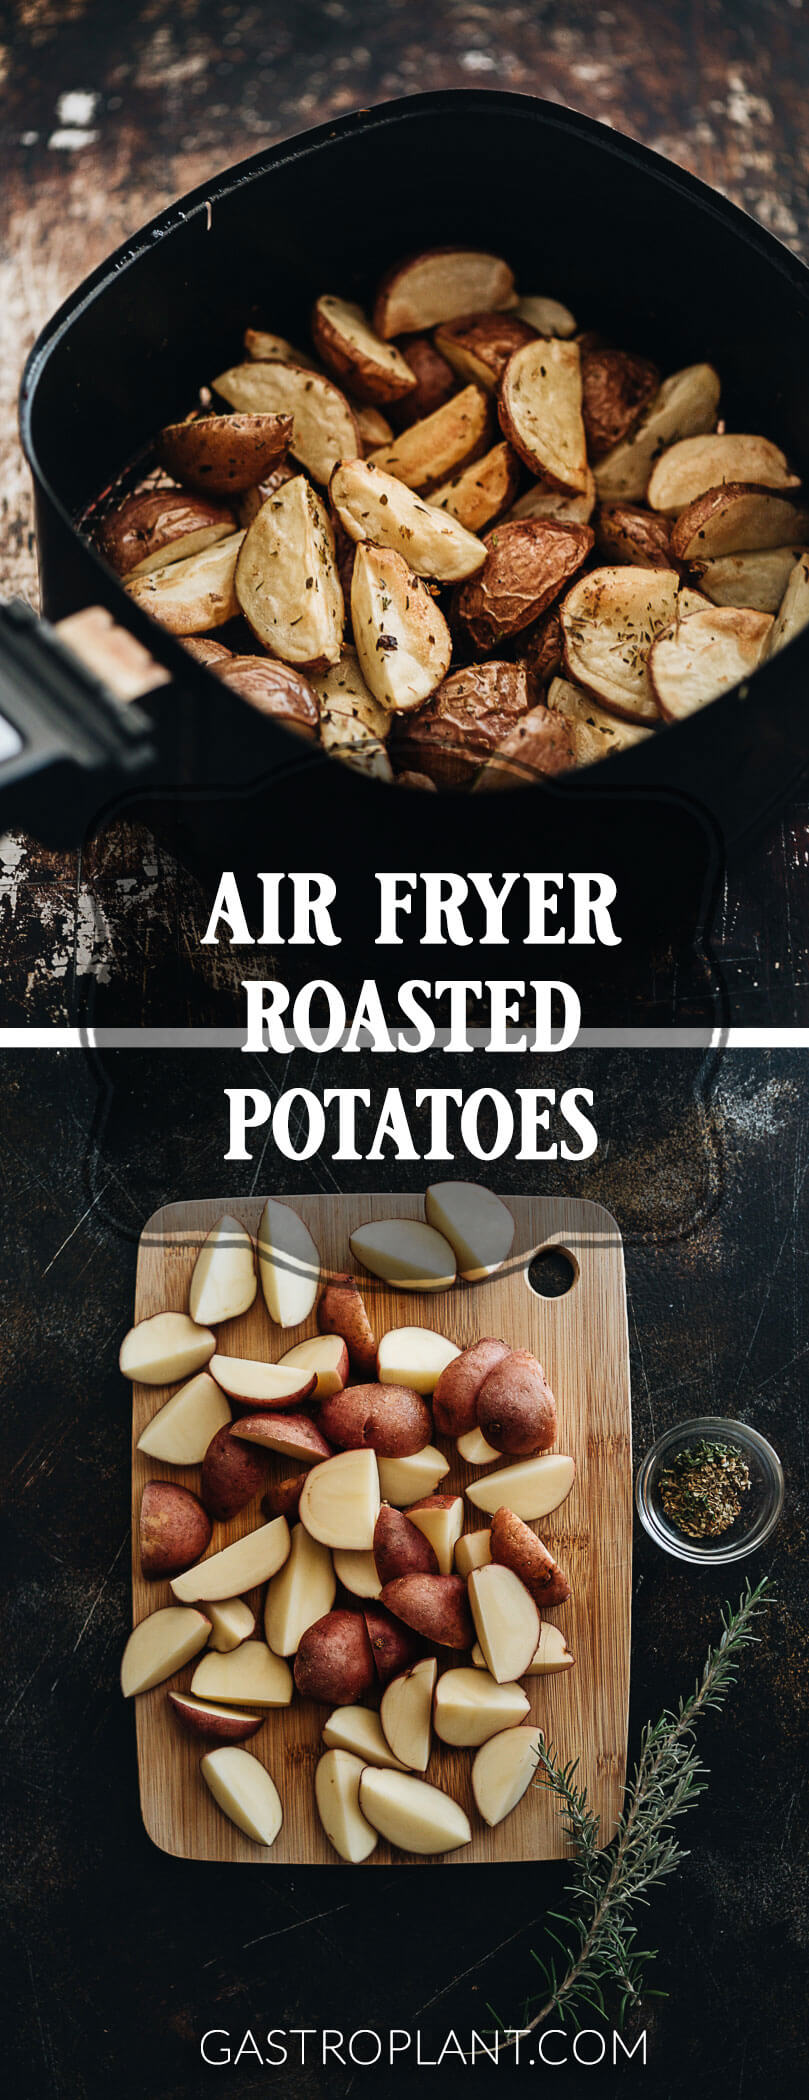 Air Fryer Roasted Potatoes - Perfect air fryer roasted potatoes make a great hearty side dish at breakfast, lunch, or dinner. They're crispy and tender, dusted with herbs, and extremely easy to make.